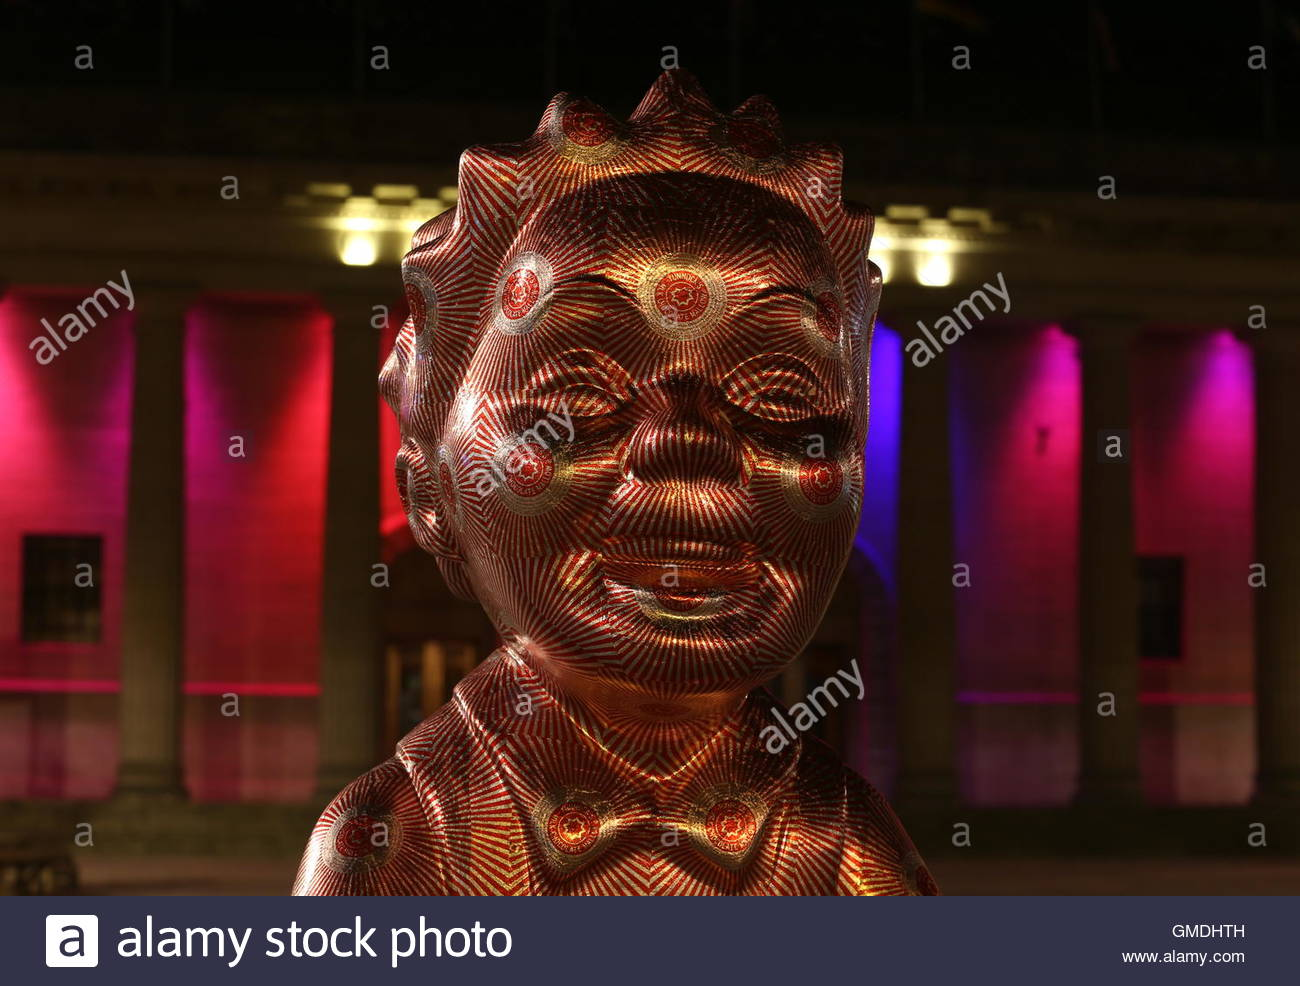 Guilded Wullie by Robert Mach one of the touring Oor Wullie statues back in City Square by night Dundee Scotland - Stock Image